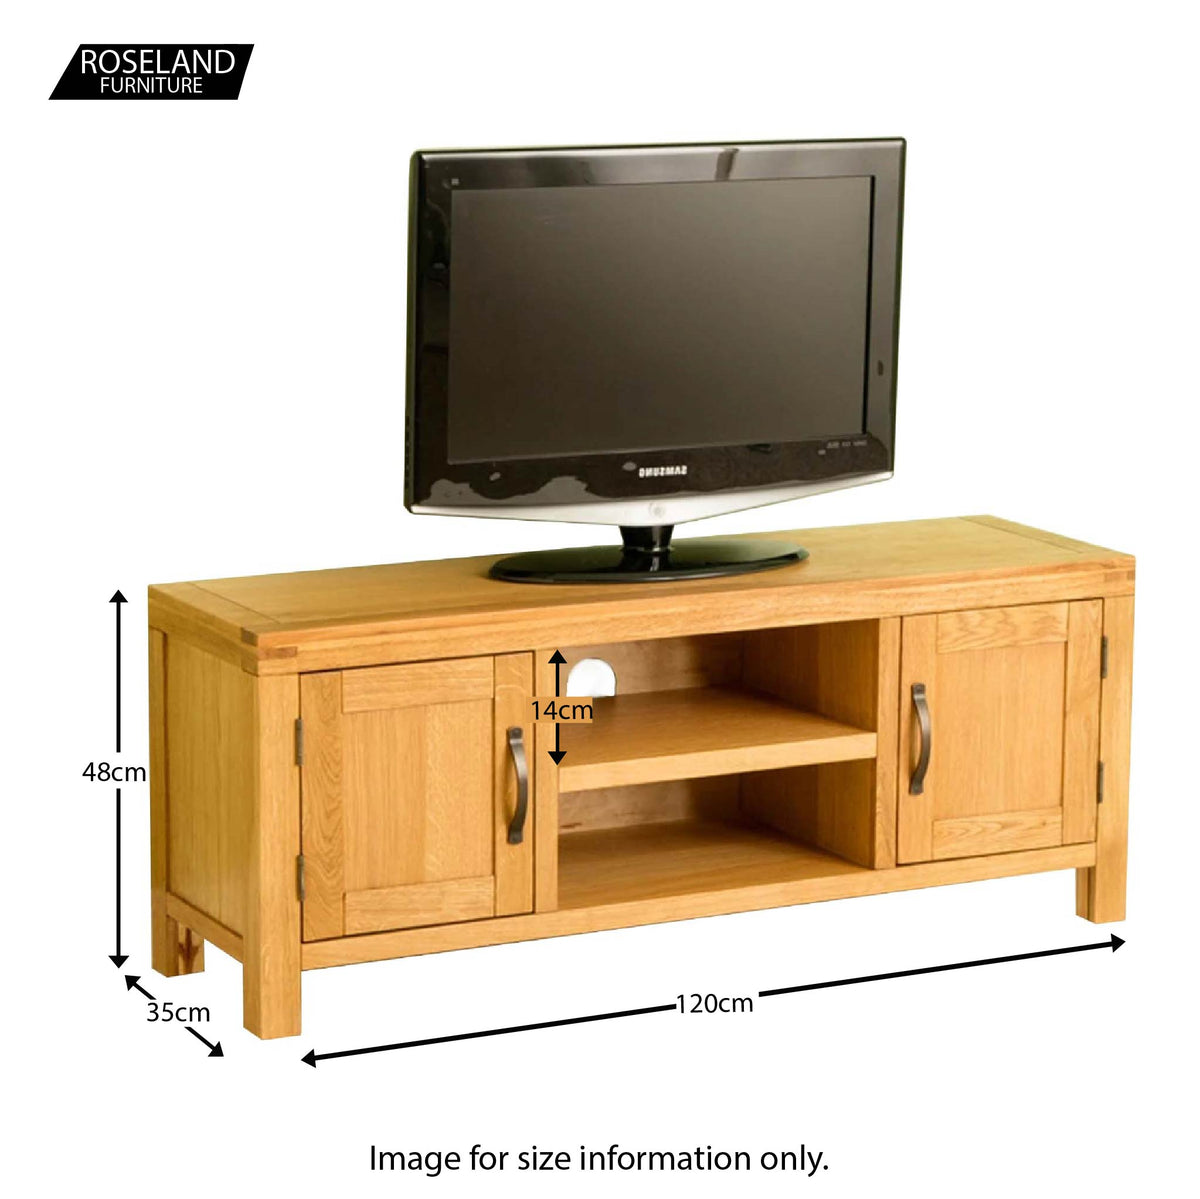 Abbey Waxed 120cm Large Oak TV Stand Storage Unit - Size guide